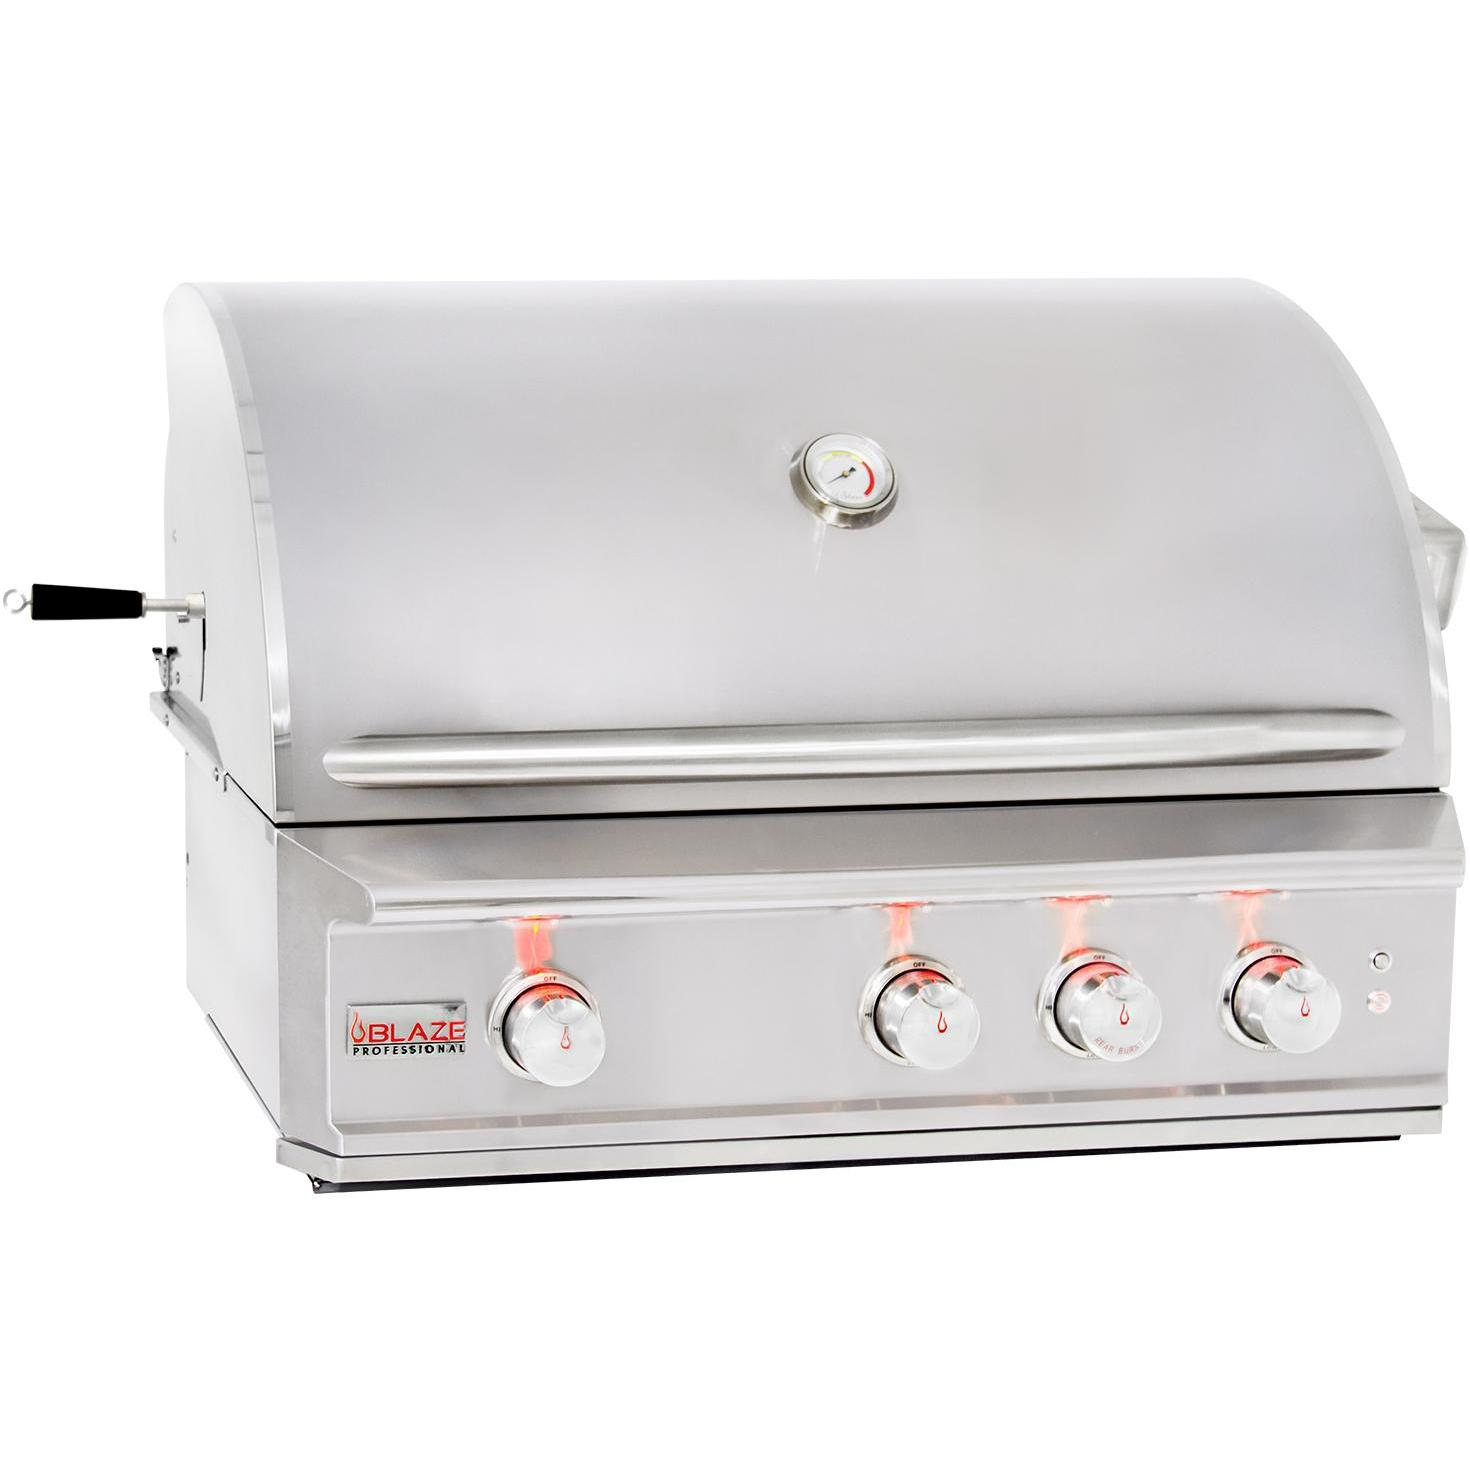 Blaze Professional 34-Inch Built-In Natural Gas Grill With Rear Infrared Burner 2881134